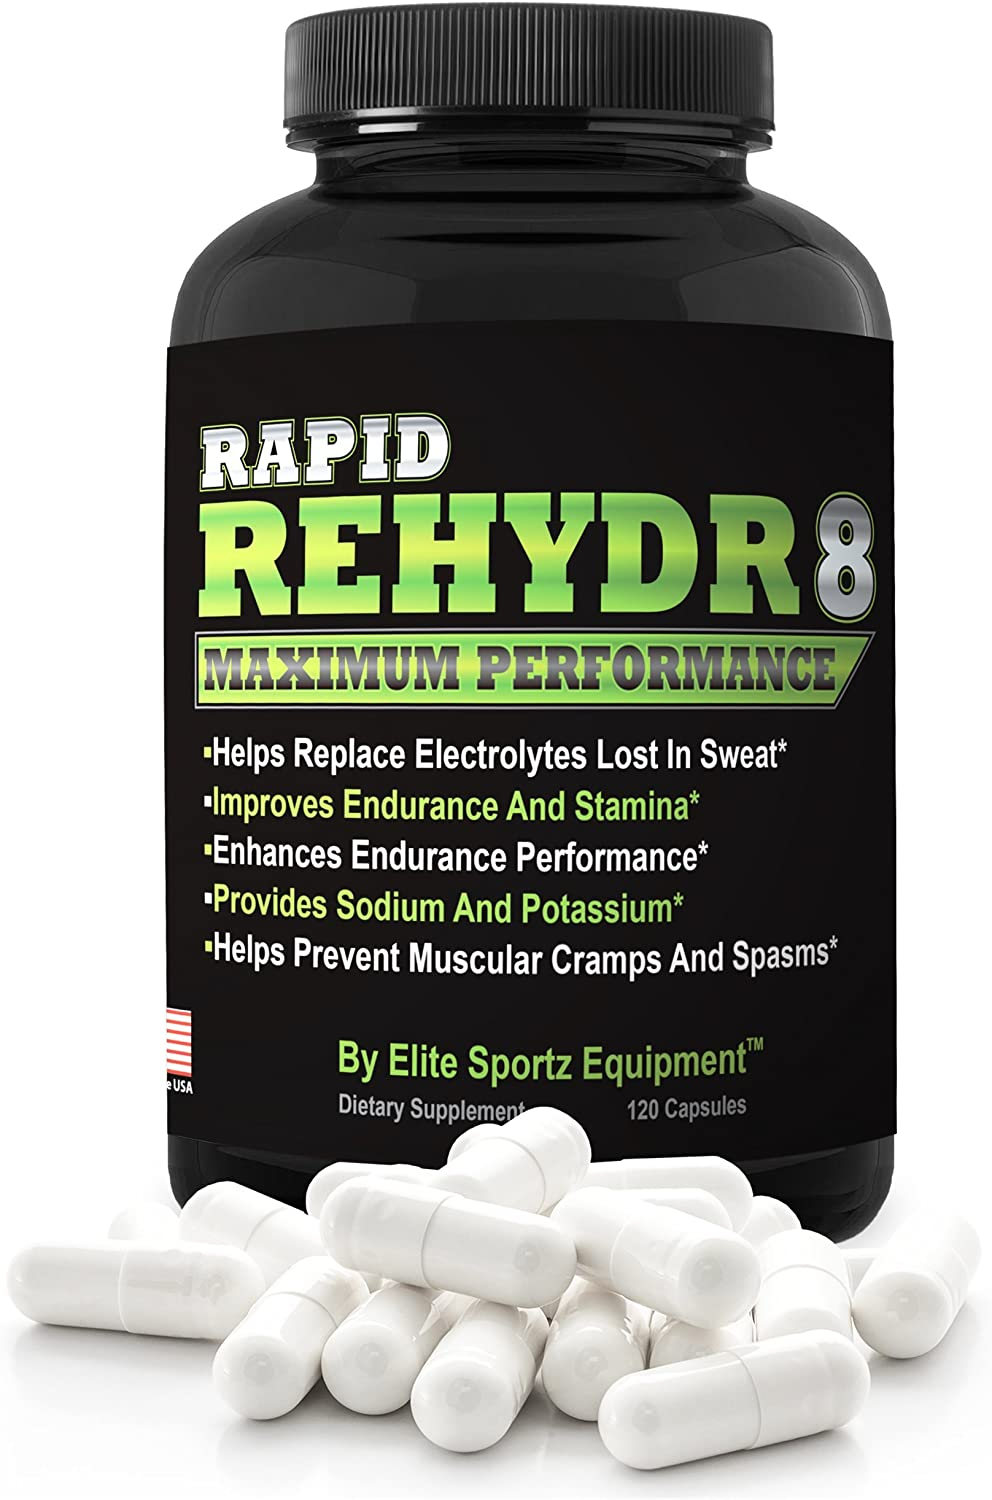 Elite Sportz Electrolyte Tablets Stop Leg Cramps Fast - Our Electrolyte Supplement Will End Your Cramp Issues and Allow You to Compete Like Never Before. 120 Salt Pills - Easy to Swallow Salt Tablets